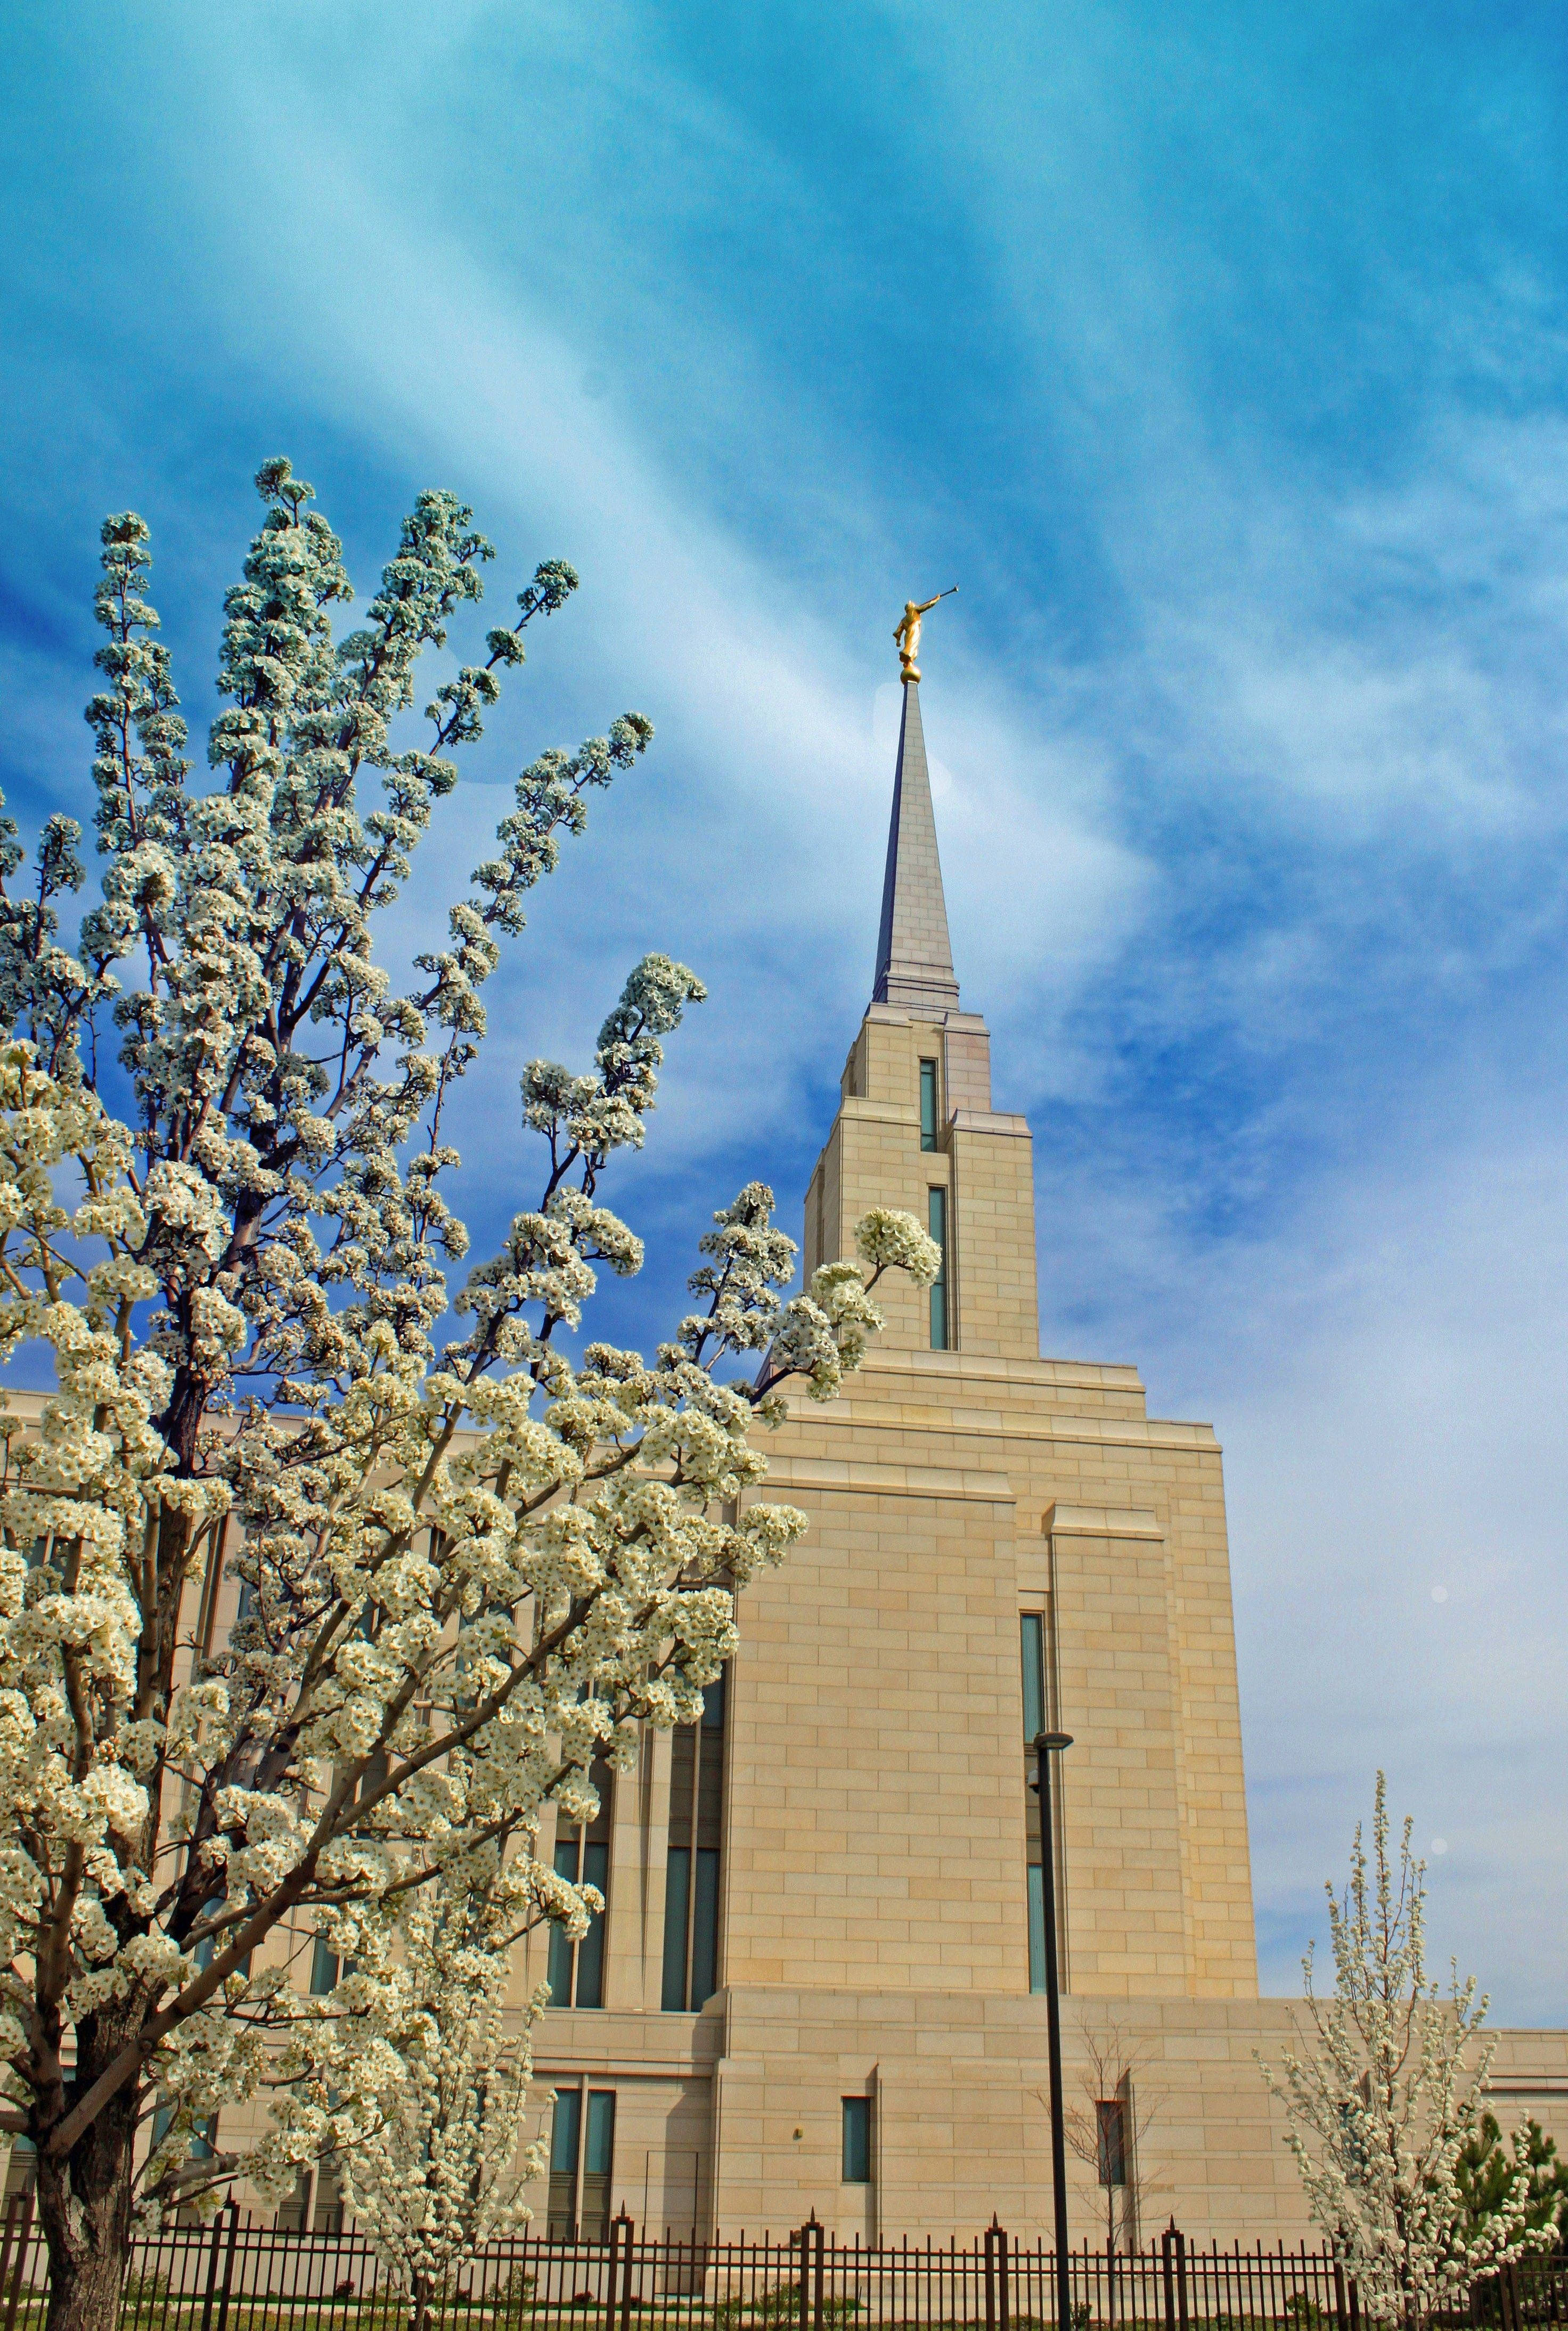 The Oquirrh Mountain Utah Temple spire, including scenery.